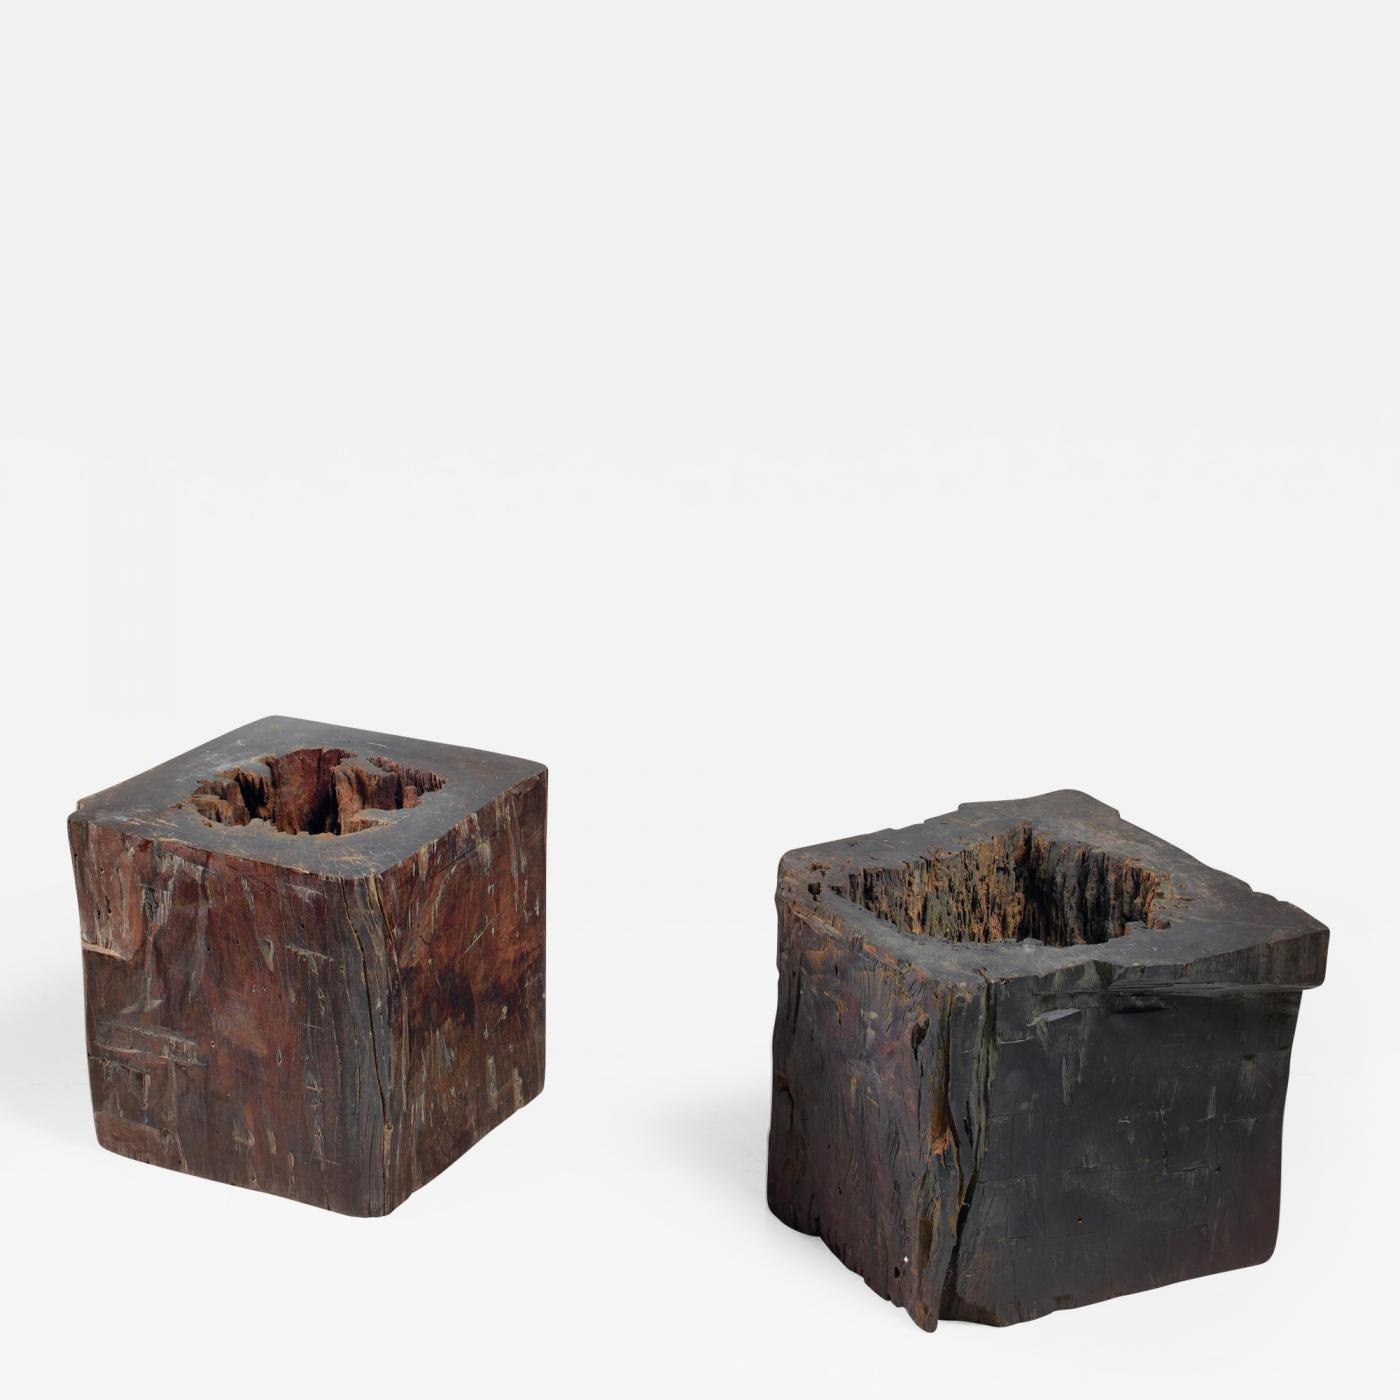 Strange Pair Of Wooden Craft Stools From Brazil 19Th Century Andrewgaddart Wooden Chair Designs For Living Room Andrewgaddartcom